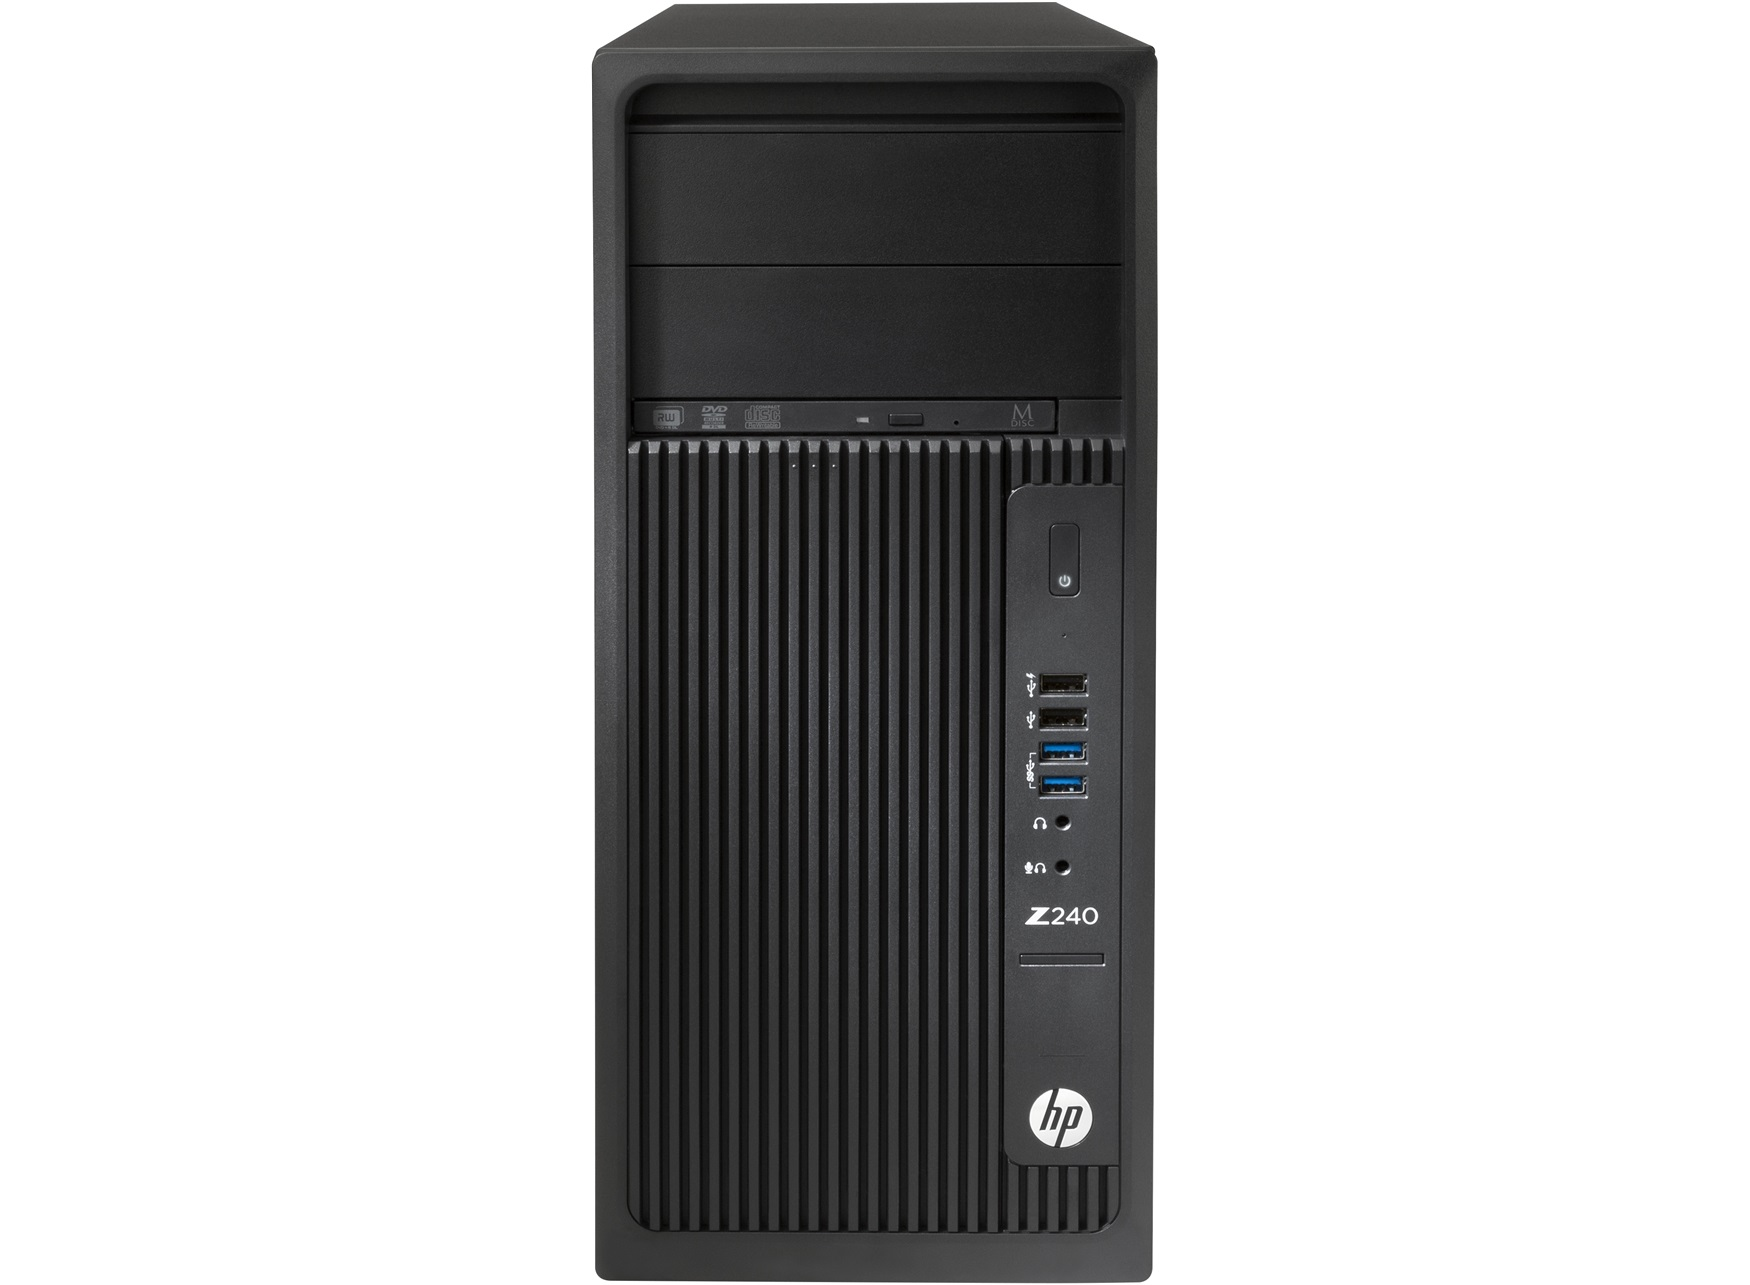 HP Z240 Workstation L8T12AV Desktop